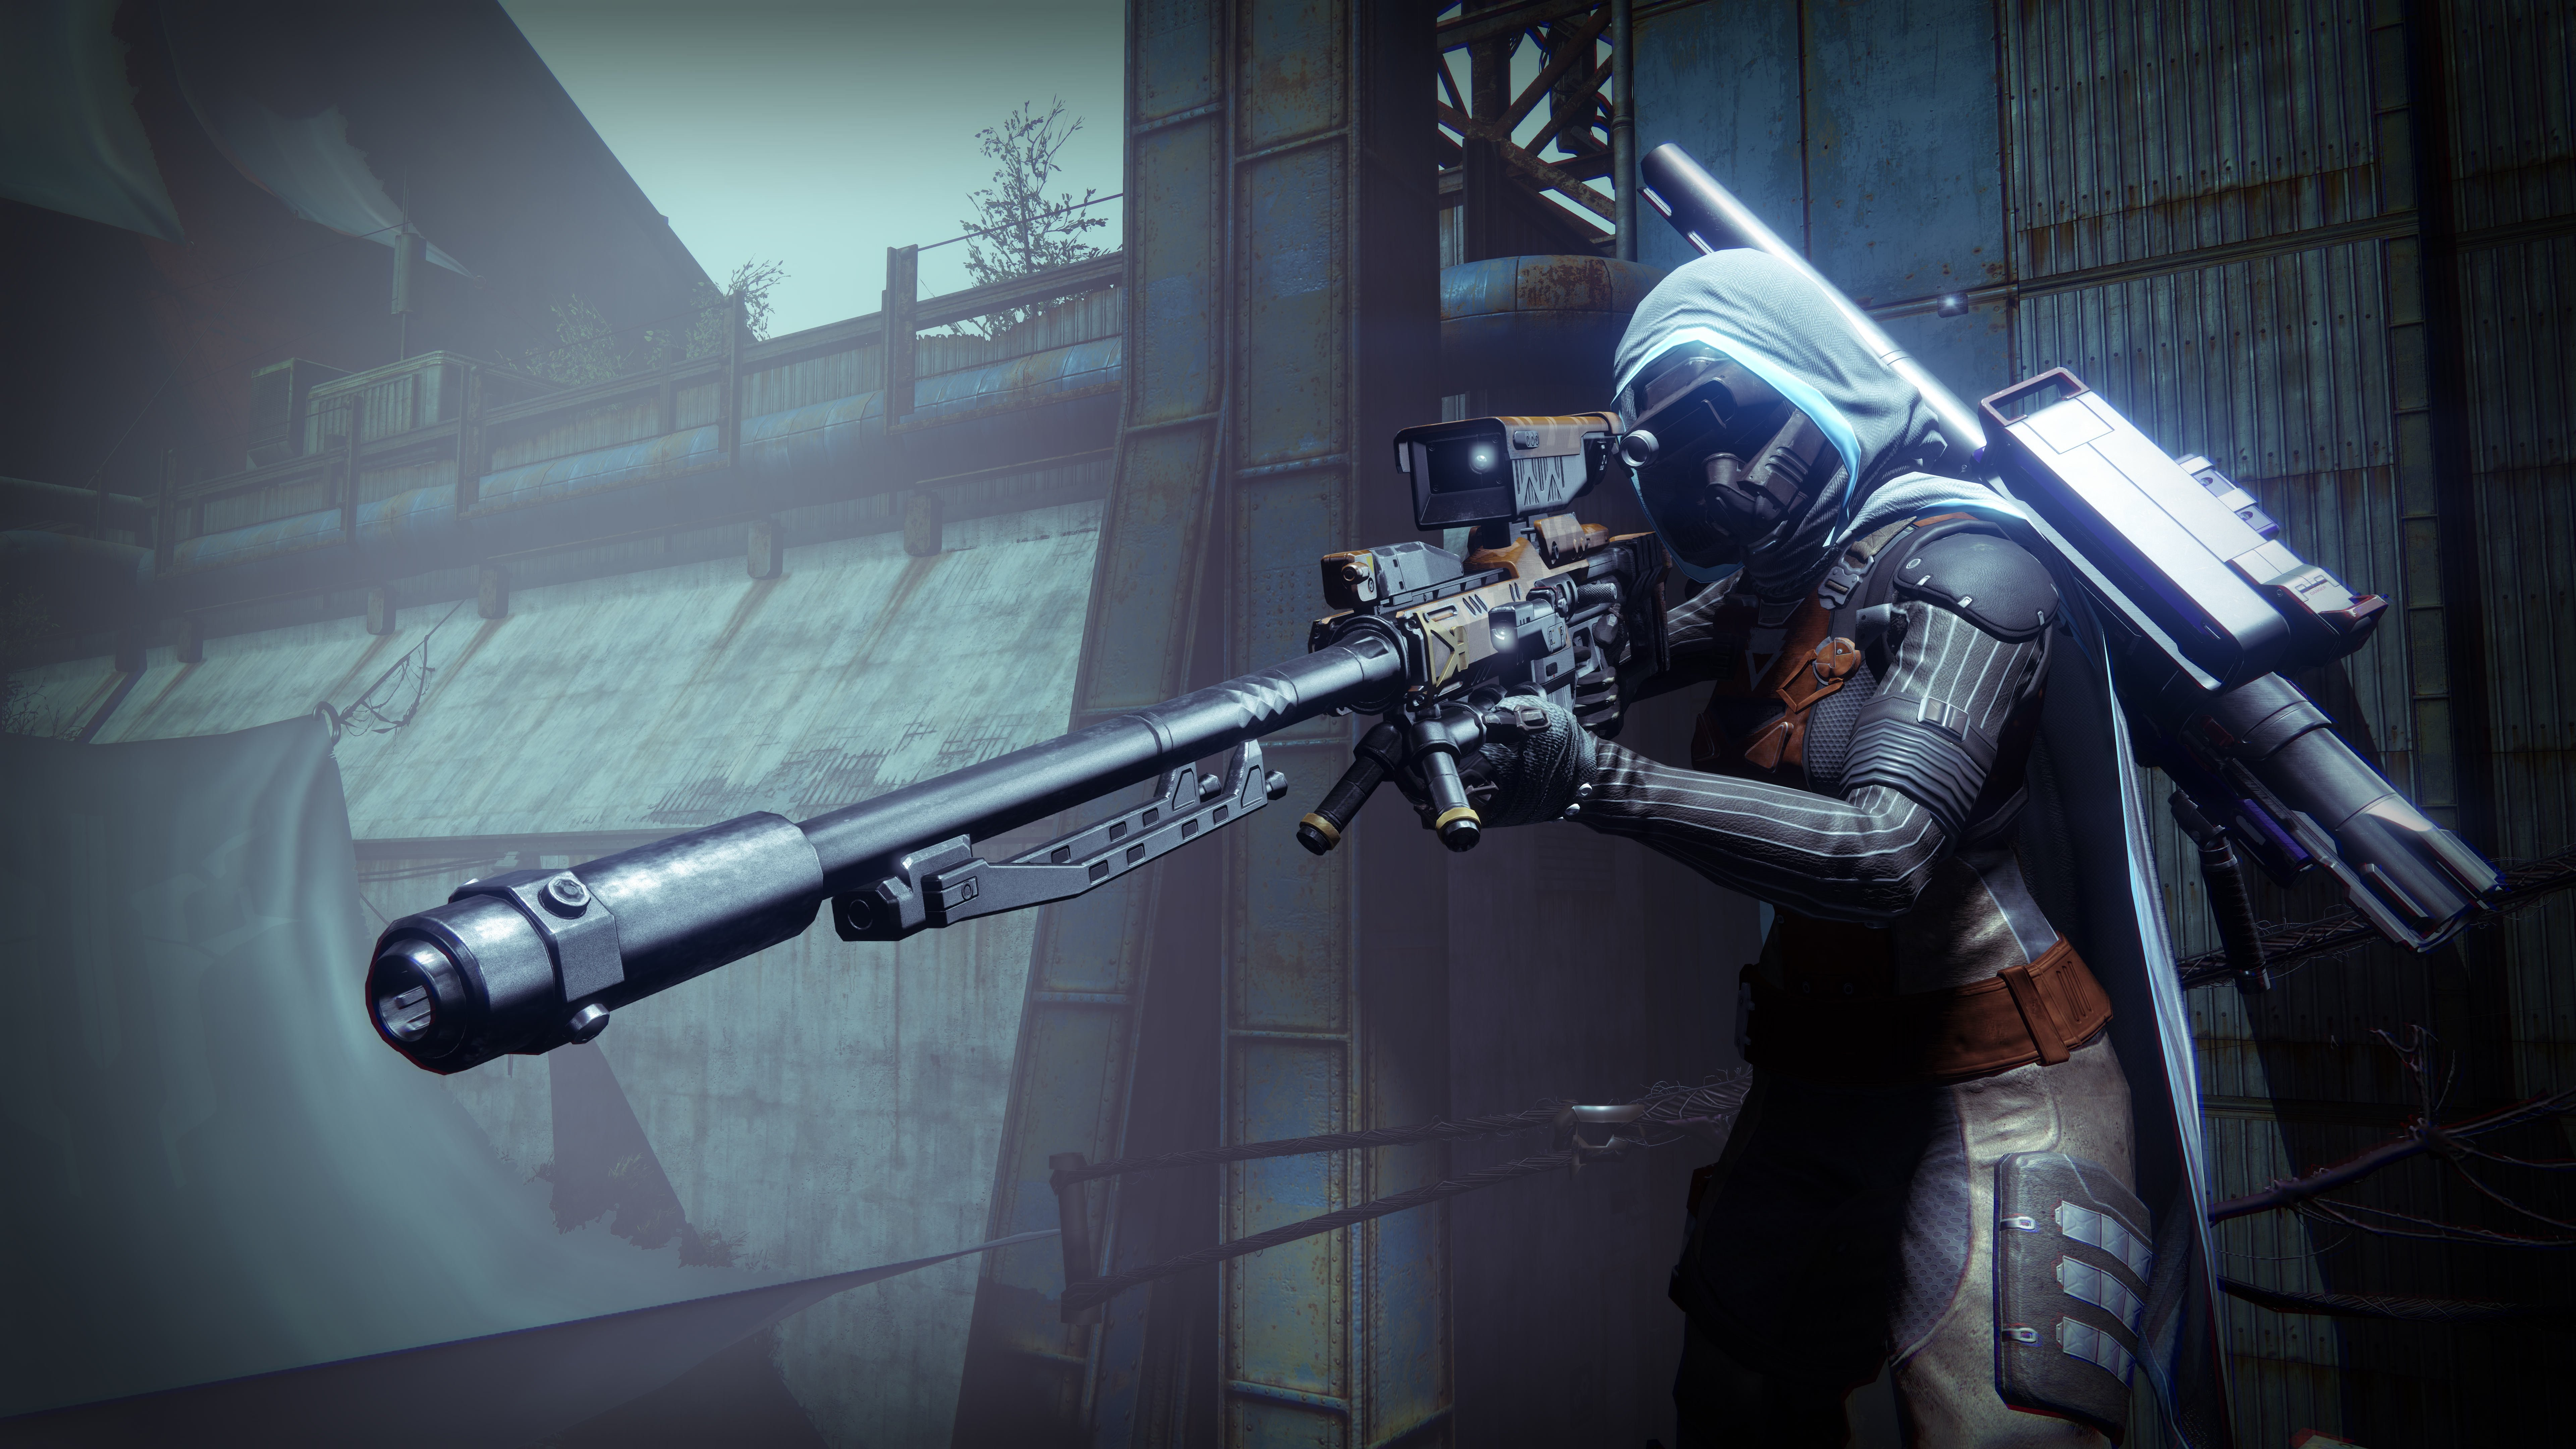 Destiny 2 5k 8k 2017 Hd Games 4k Wallpapers Images Backgrounds Photos And Pictures